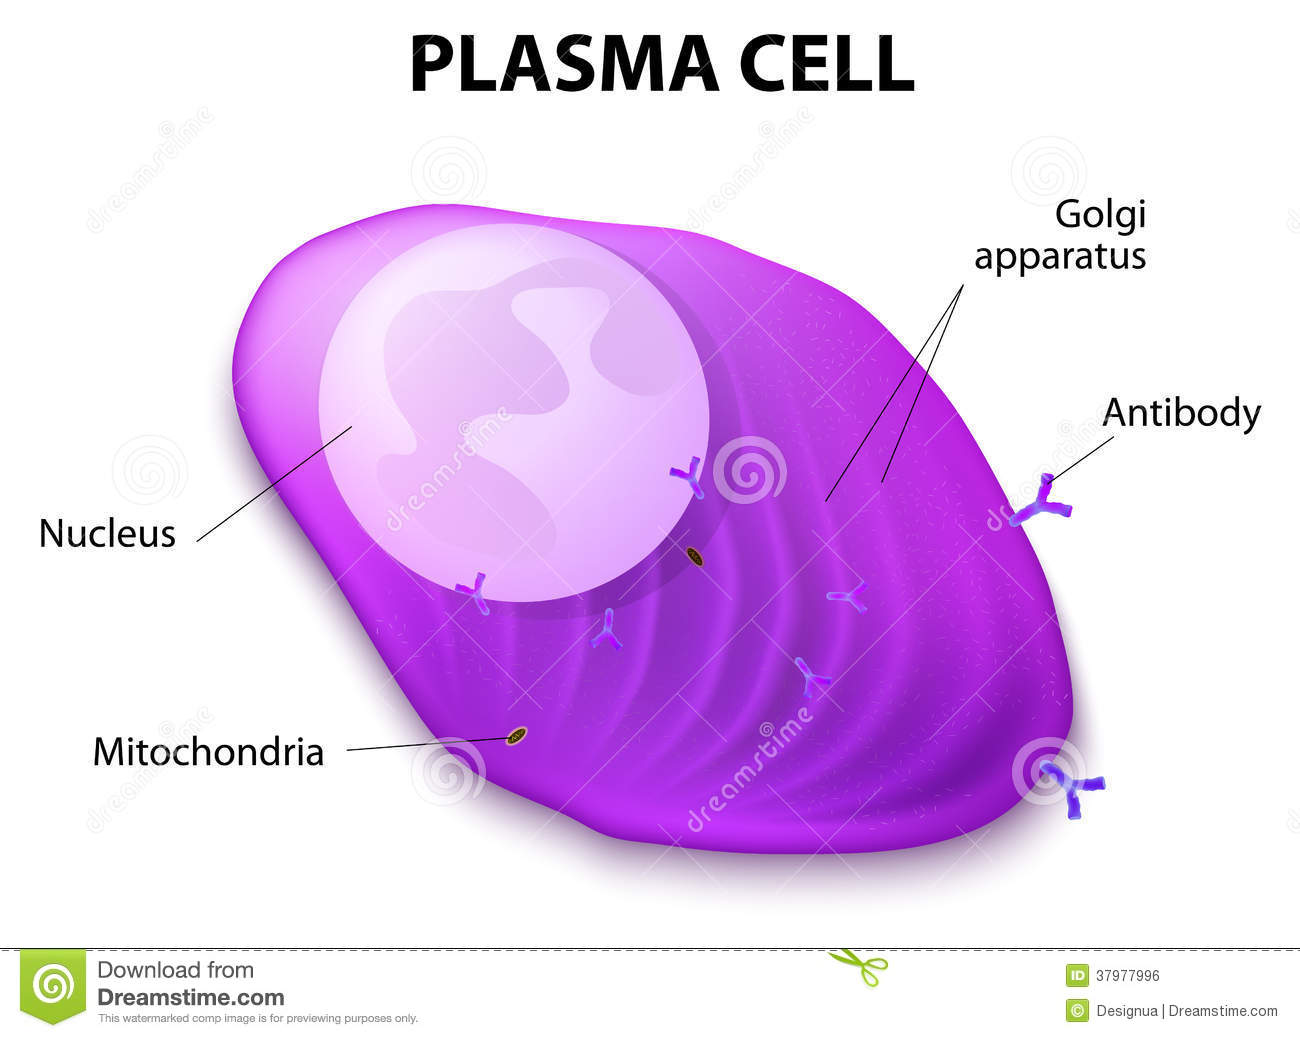 structure plasma cell b plasmocyte white blood cells secrete antibodies transported 37977996